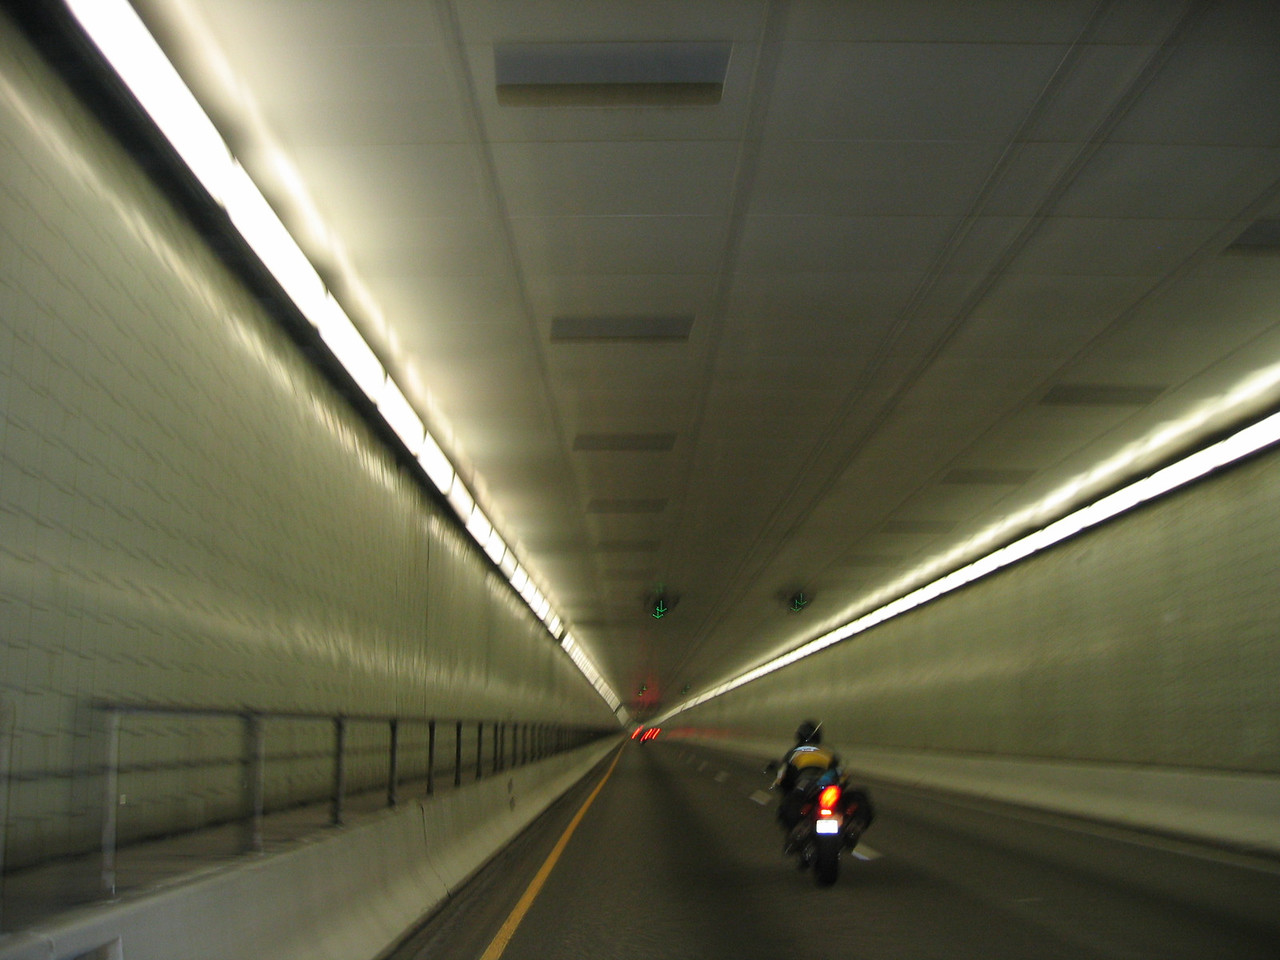 This is Dave (not Dave Cooper) riding his Honda CBR1100XX Blackbird through the Eisenhower Tunnel.